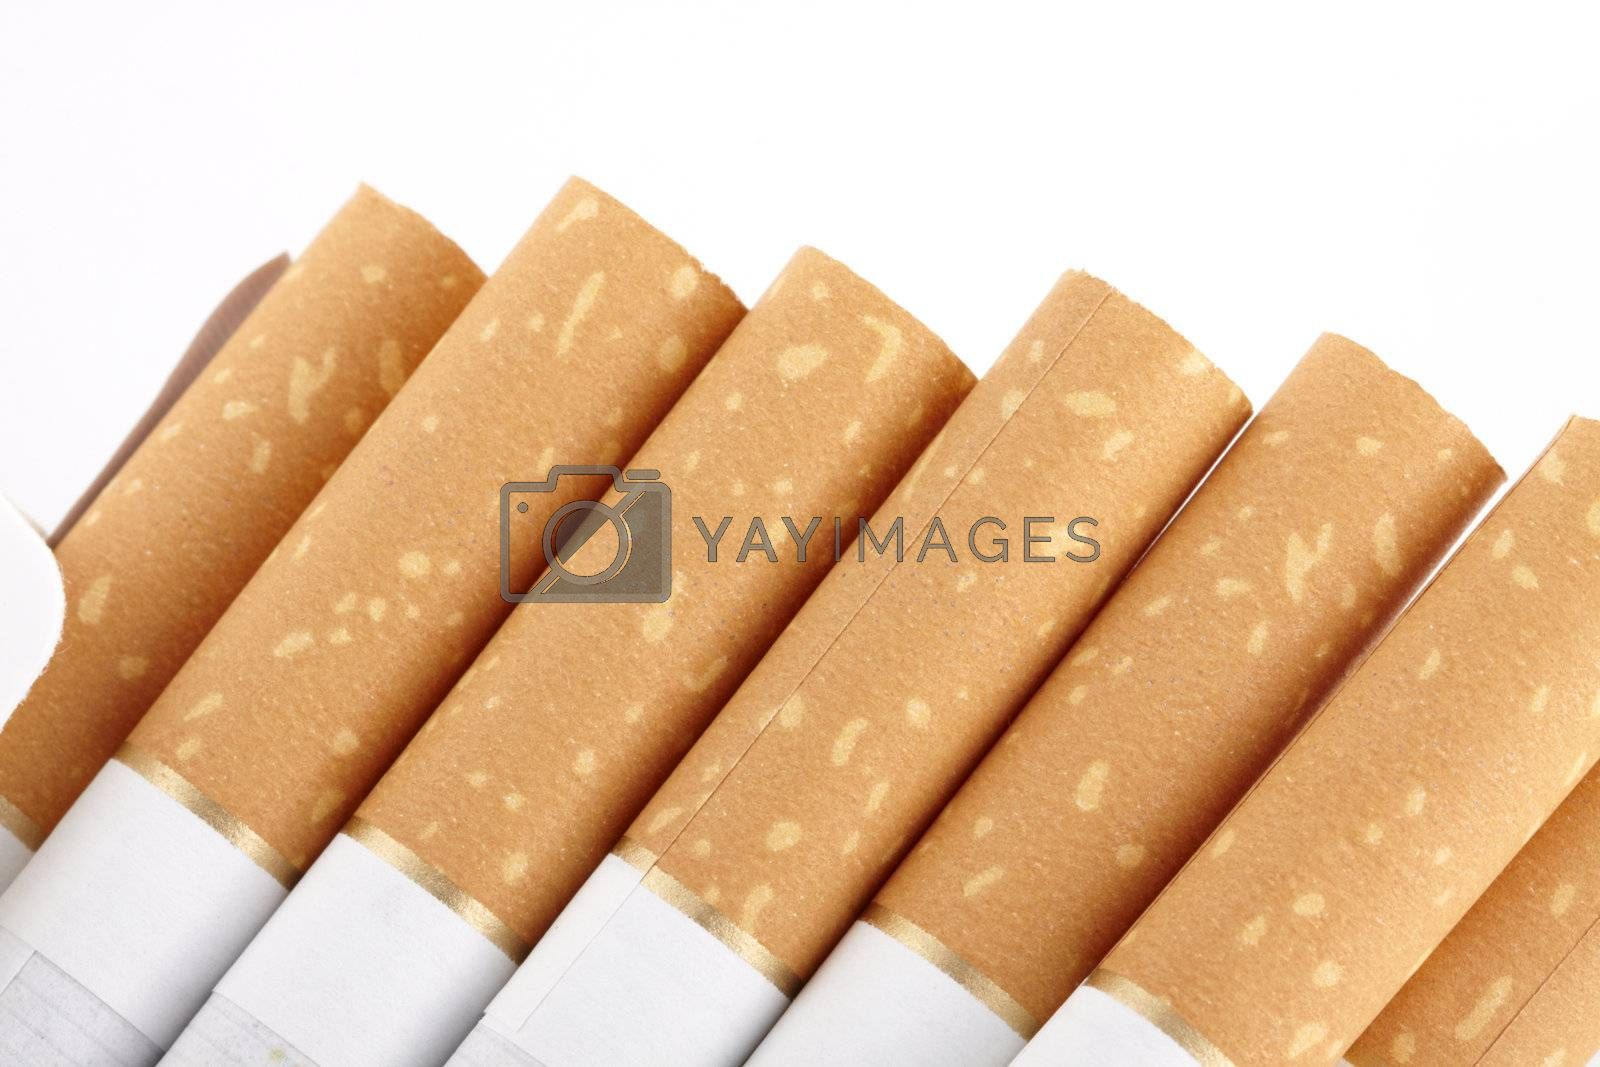 Cigarettes in packet. Close up image